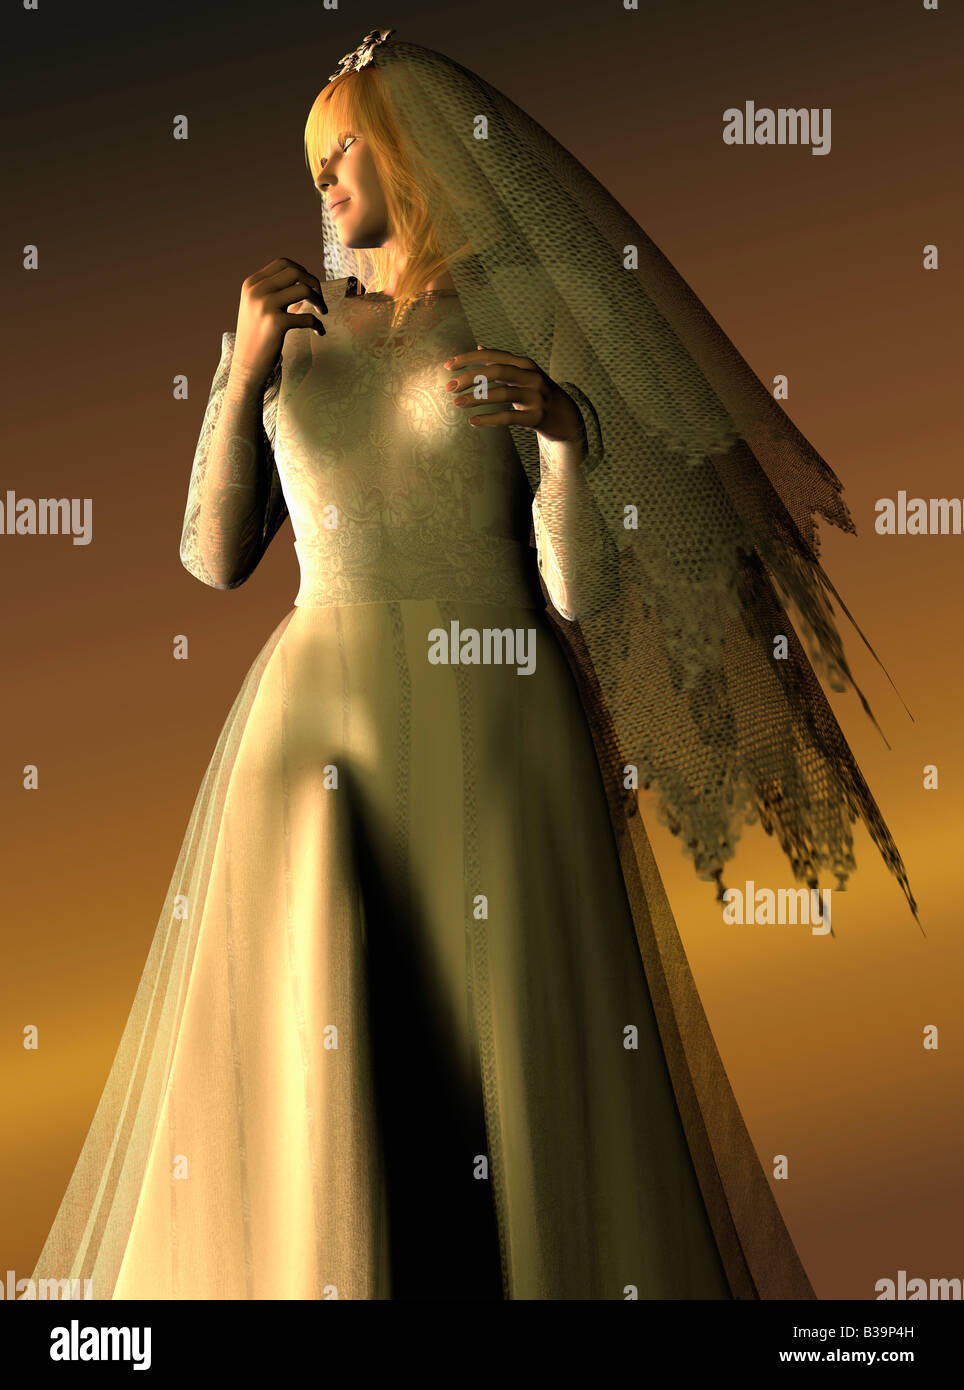 Computer Illustration Of Woman In Wedding Dress - Stock Image